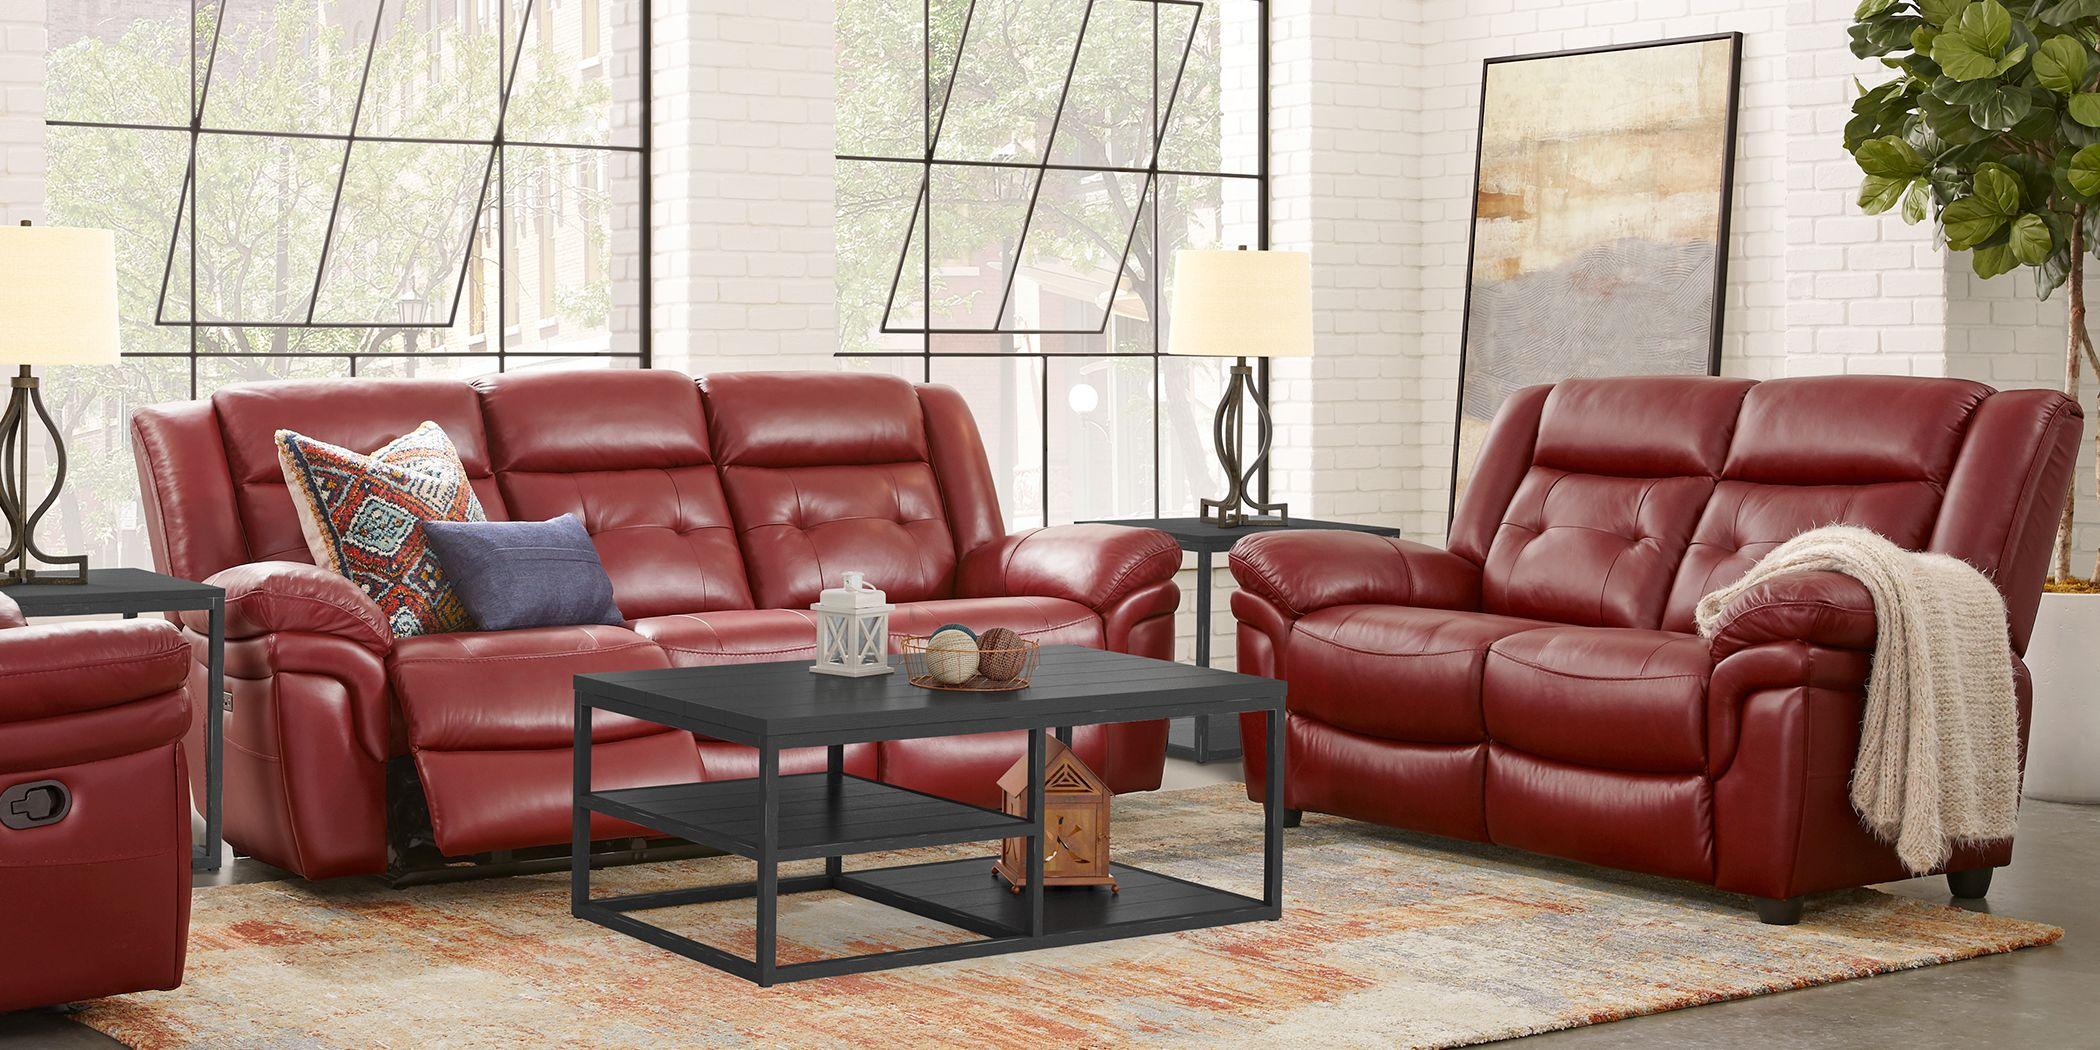 Ventoso Red Leather 3 Pc Living Room With Reclining Sofa Rooms To Go